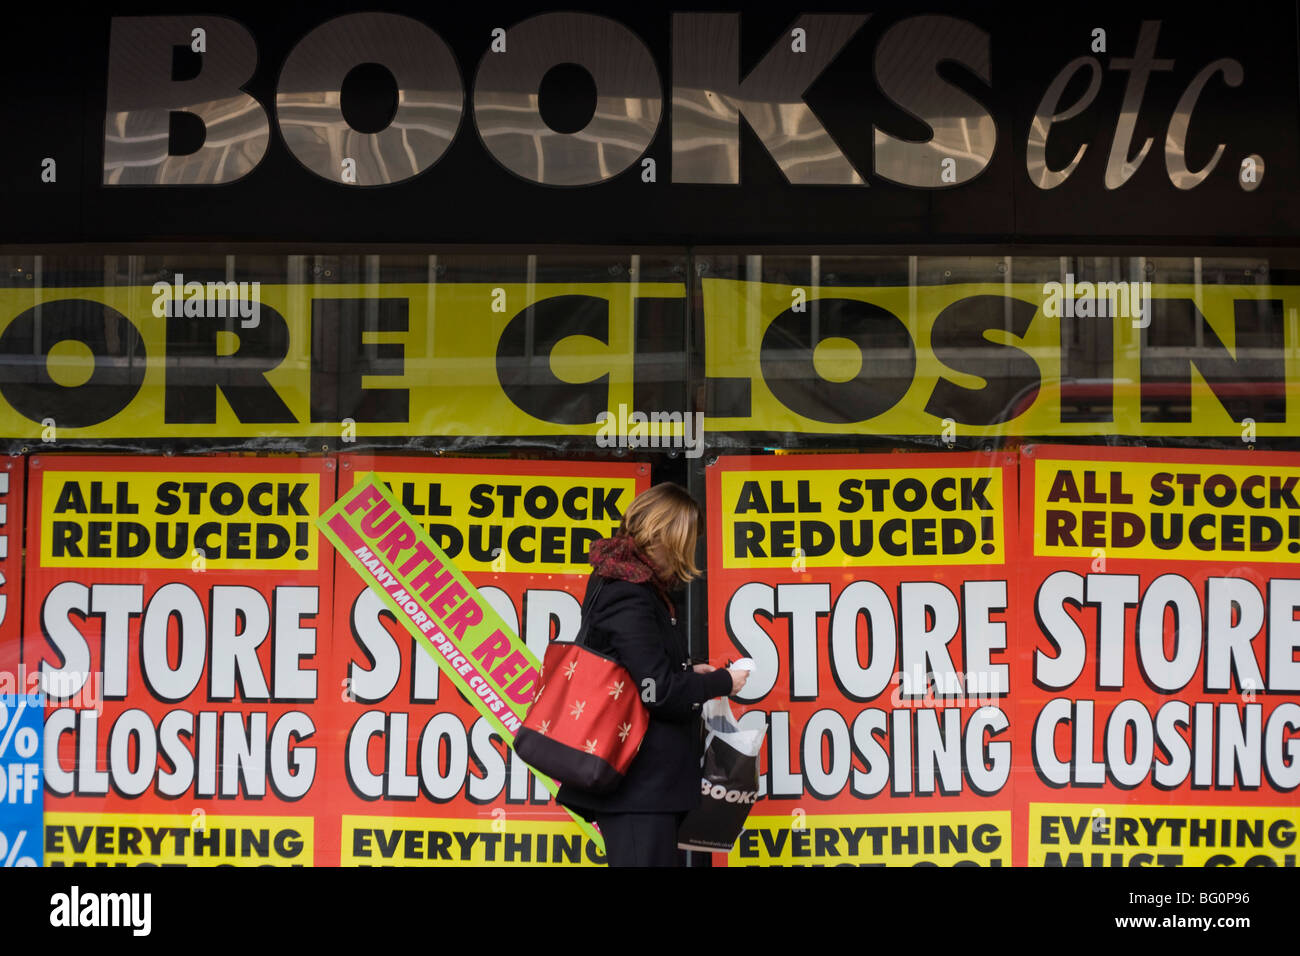 Closing down and all stock must go posters outside branch of 'Books Etc.' after the closure of parent company - Stock Image